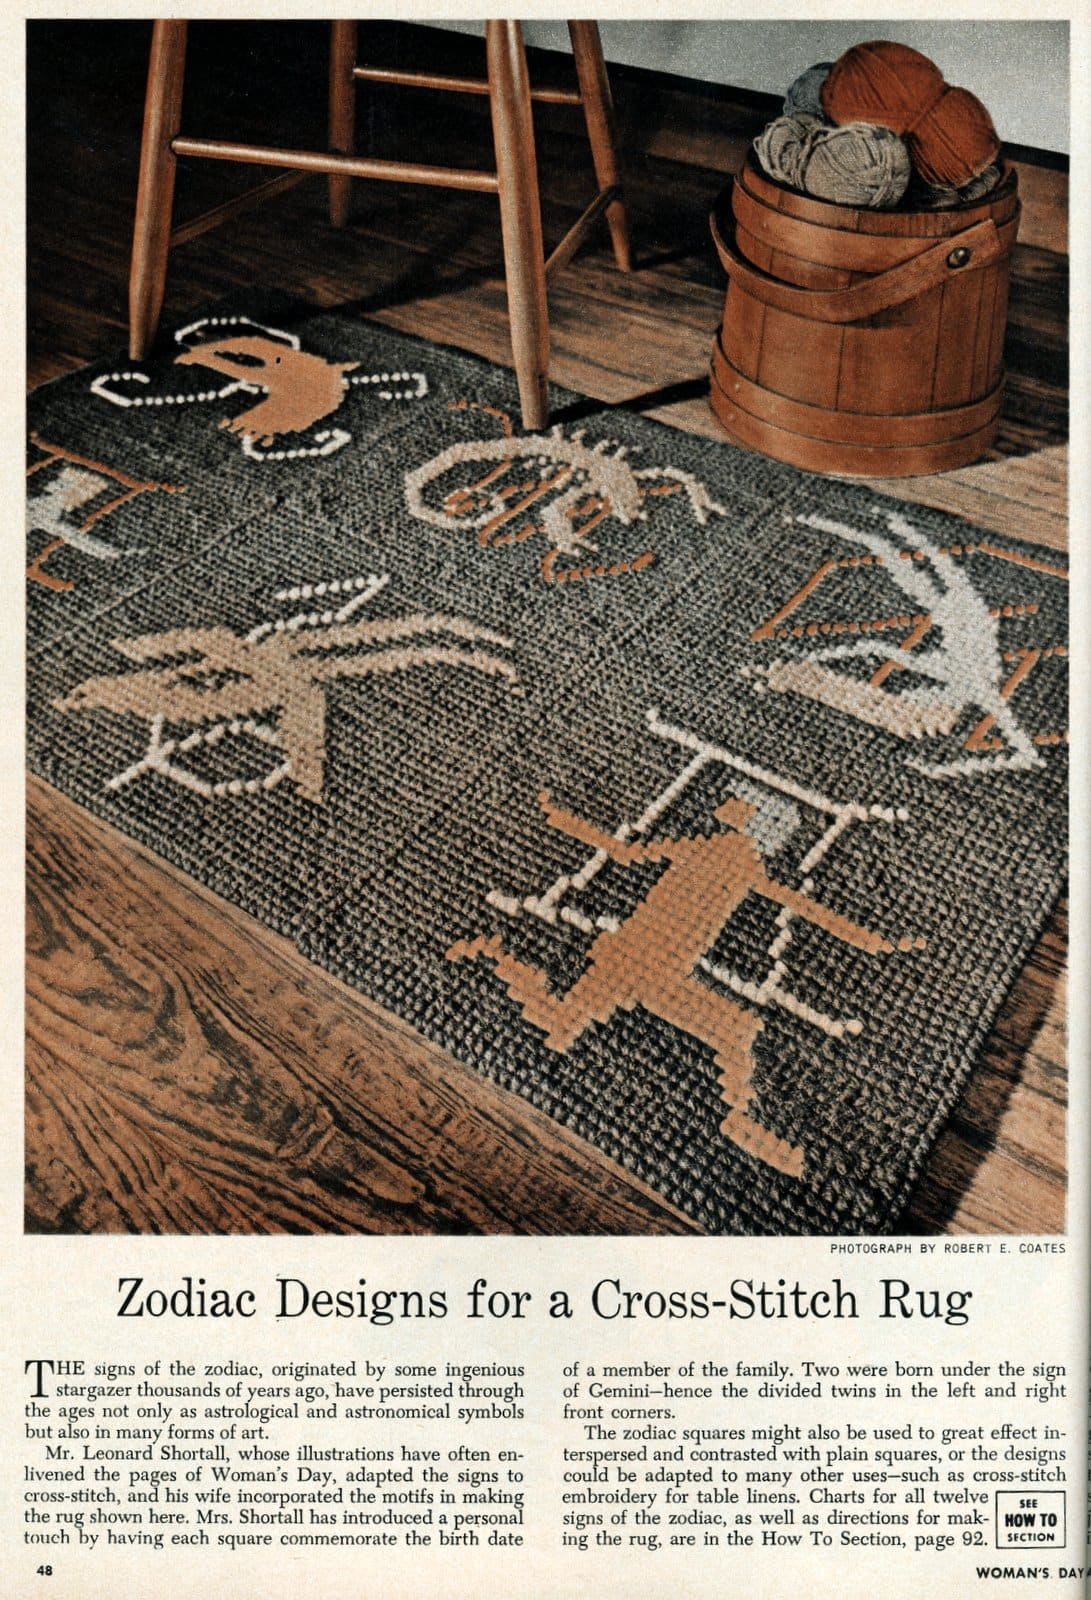 Vintage zodiac cross-stitch designs to make astrological needlework (1950)